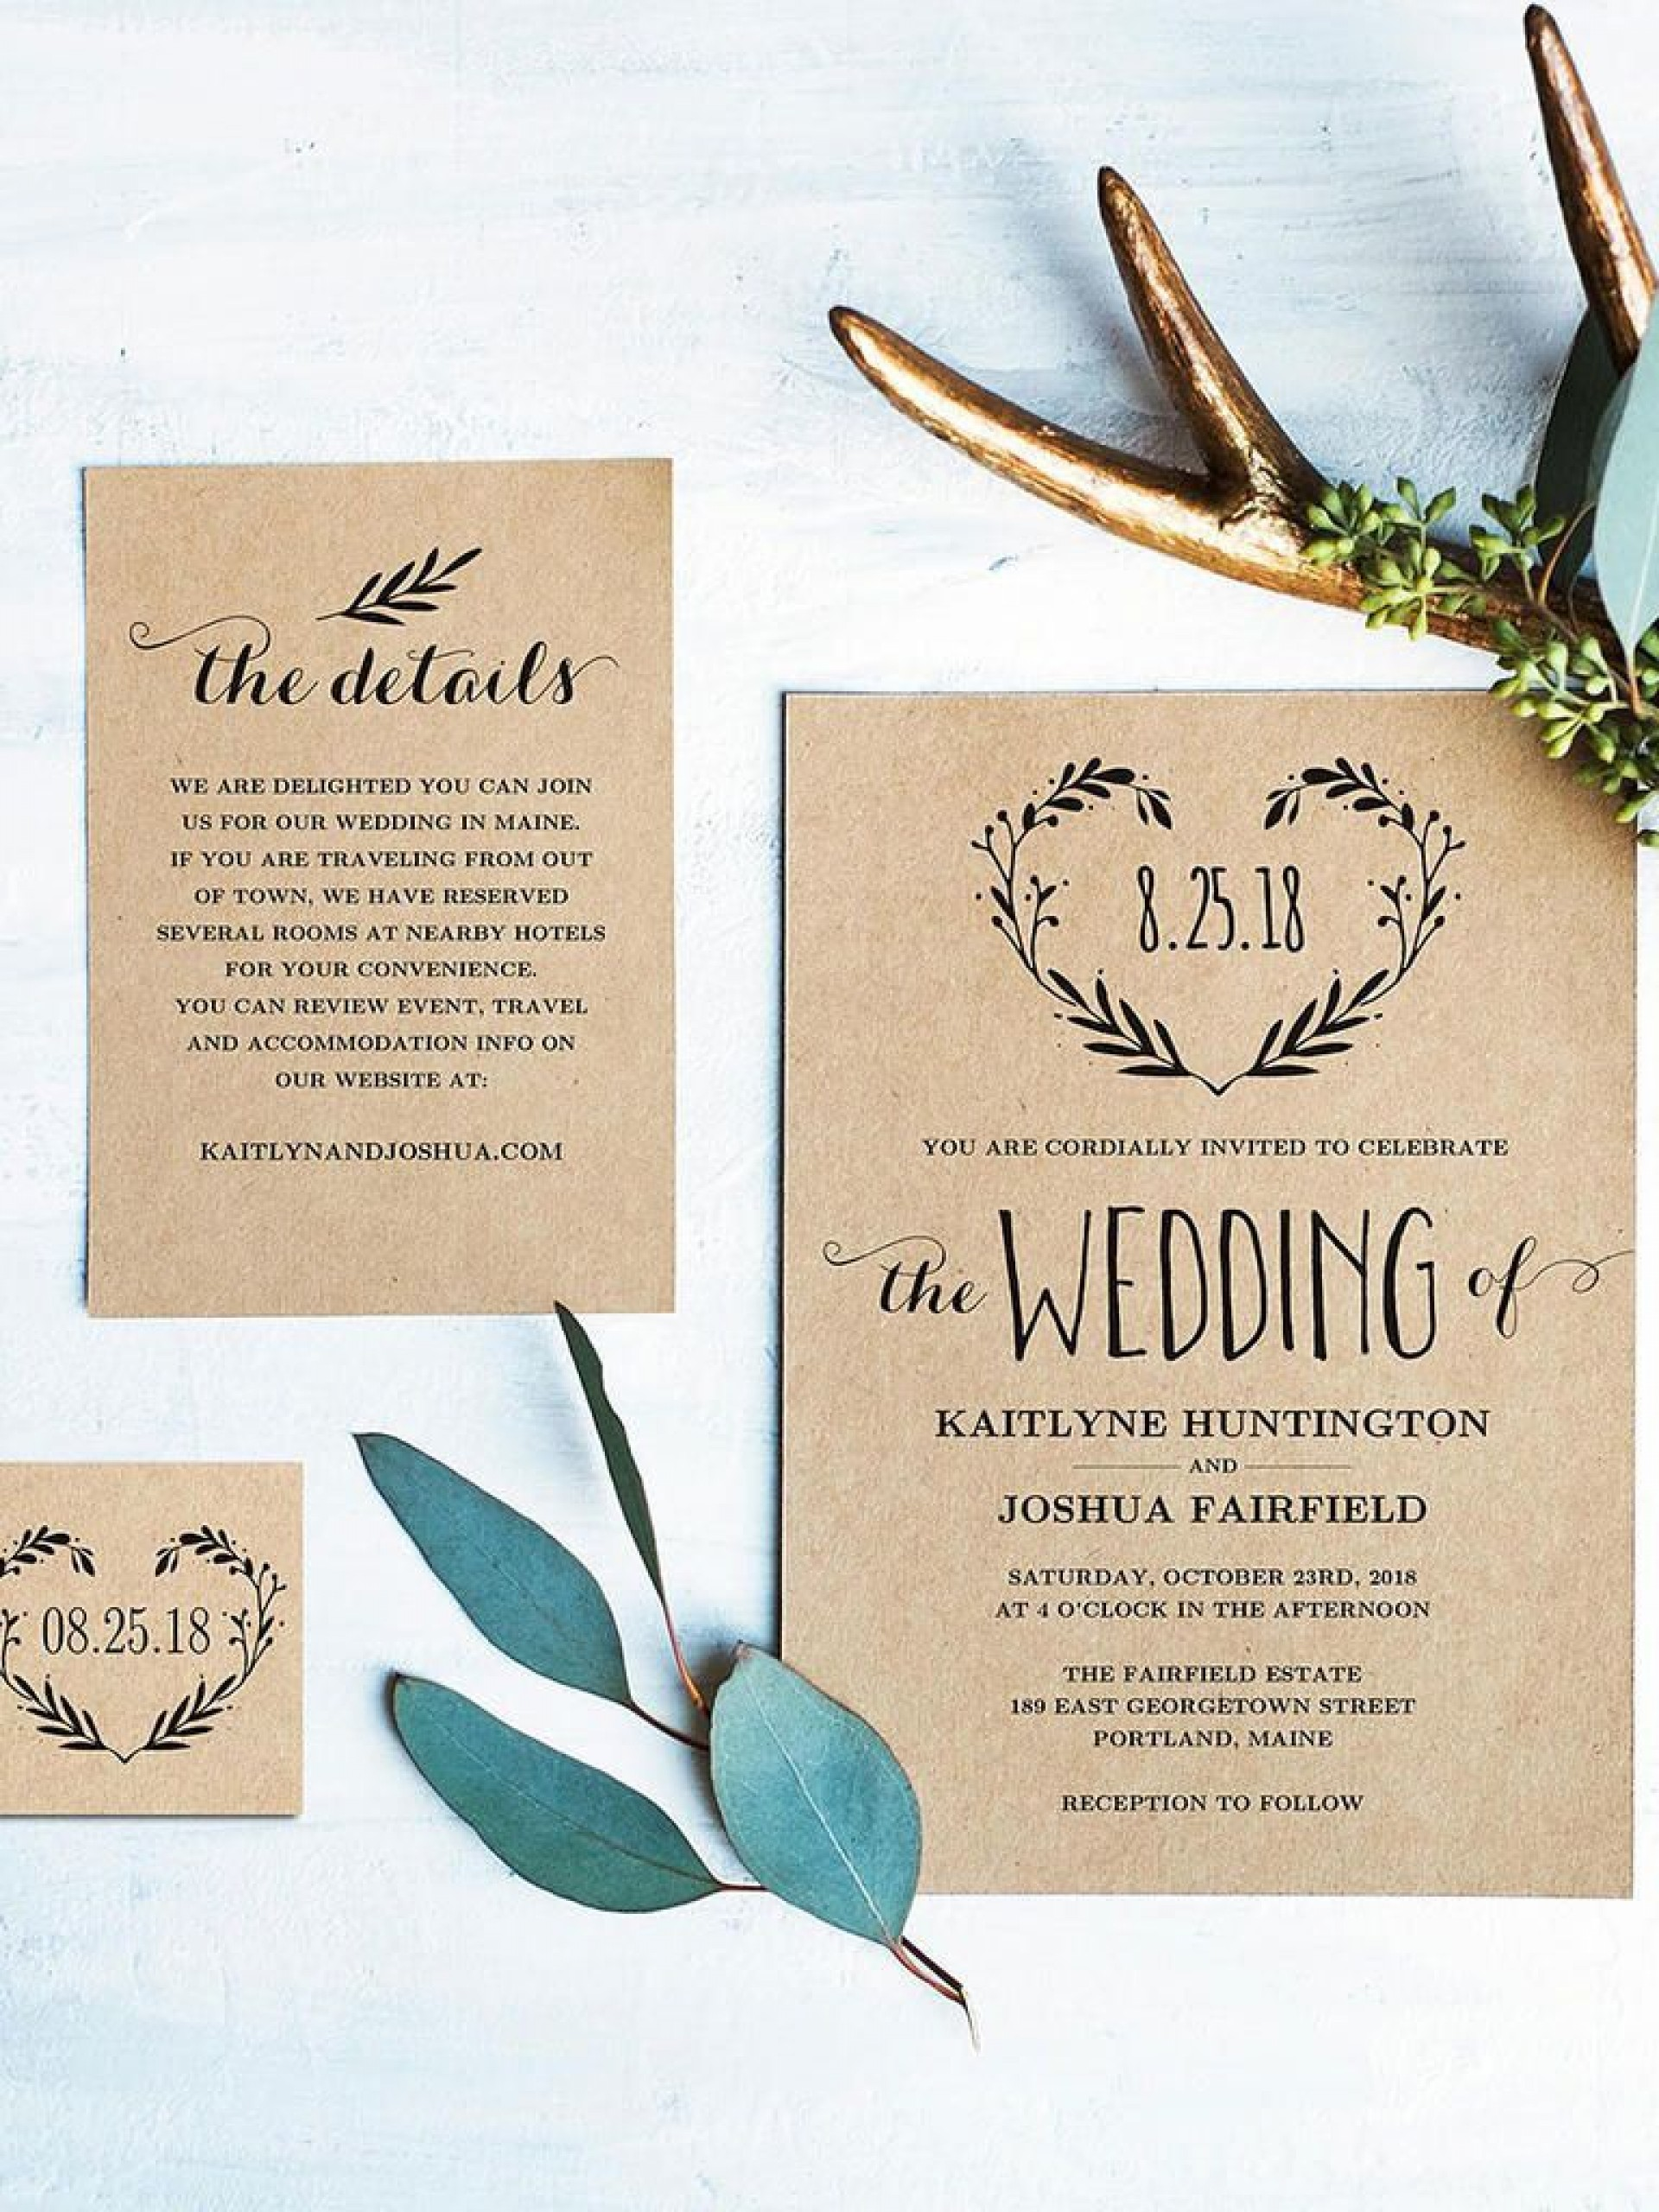 000 Unique Rustic Wedding Invitation Template Highest Clarity  Templates Free For Word Maker Photoshop1920